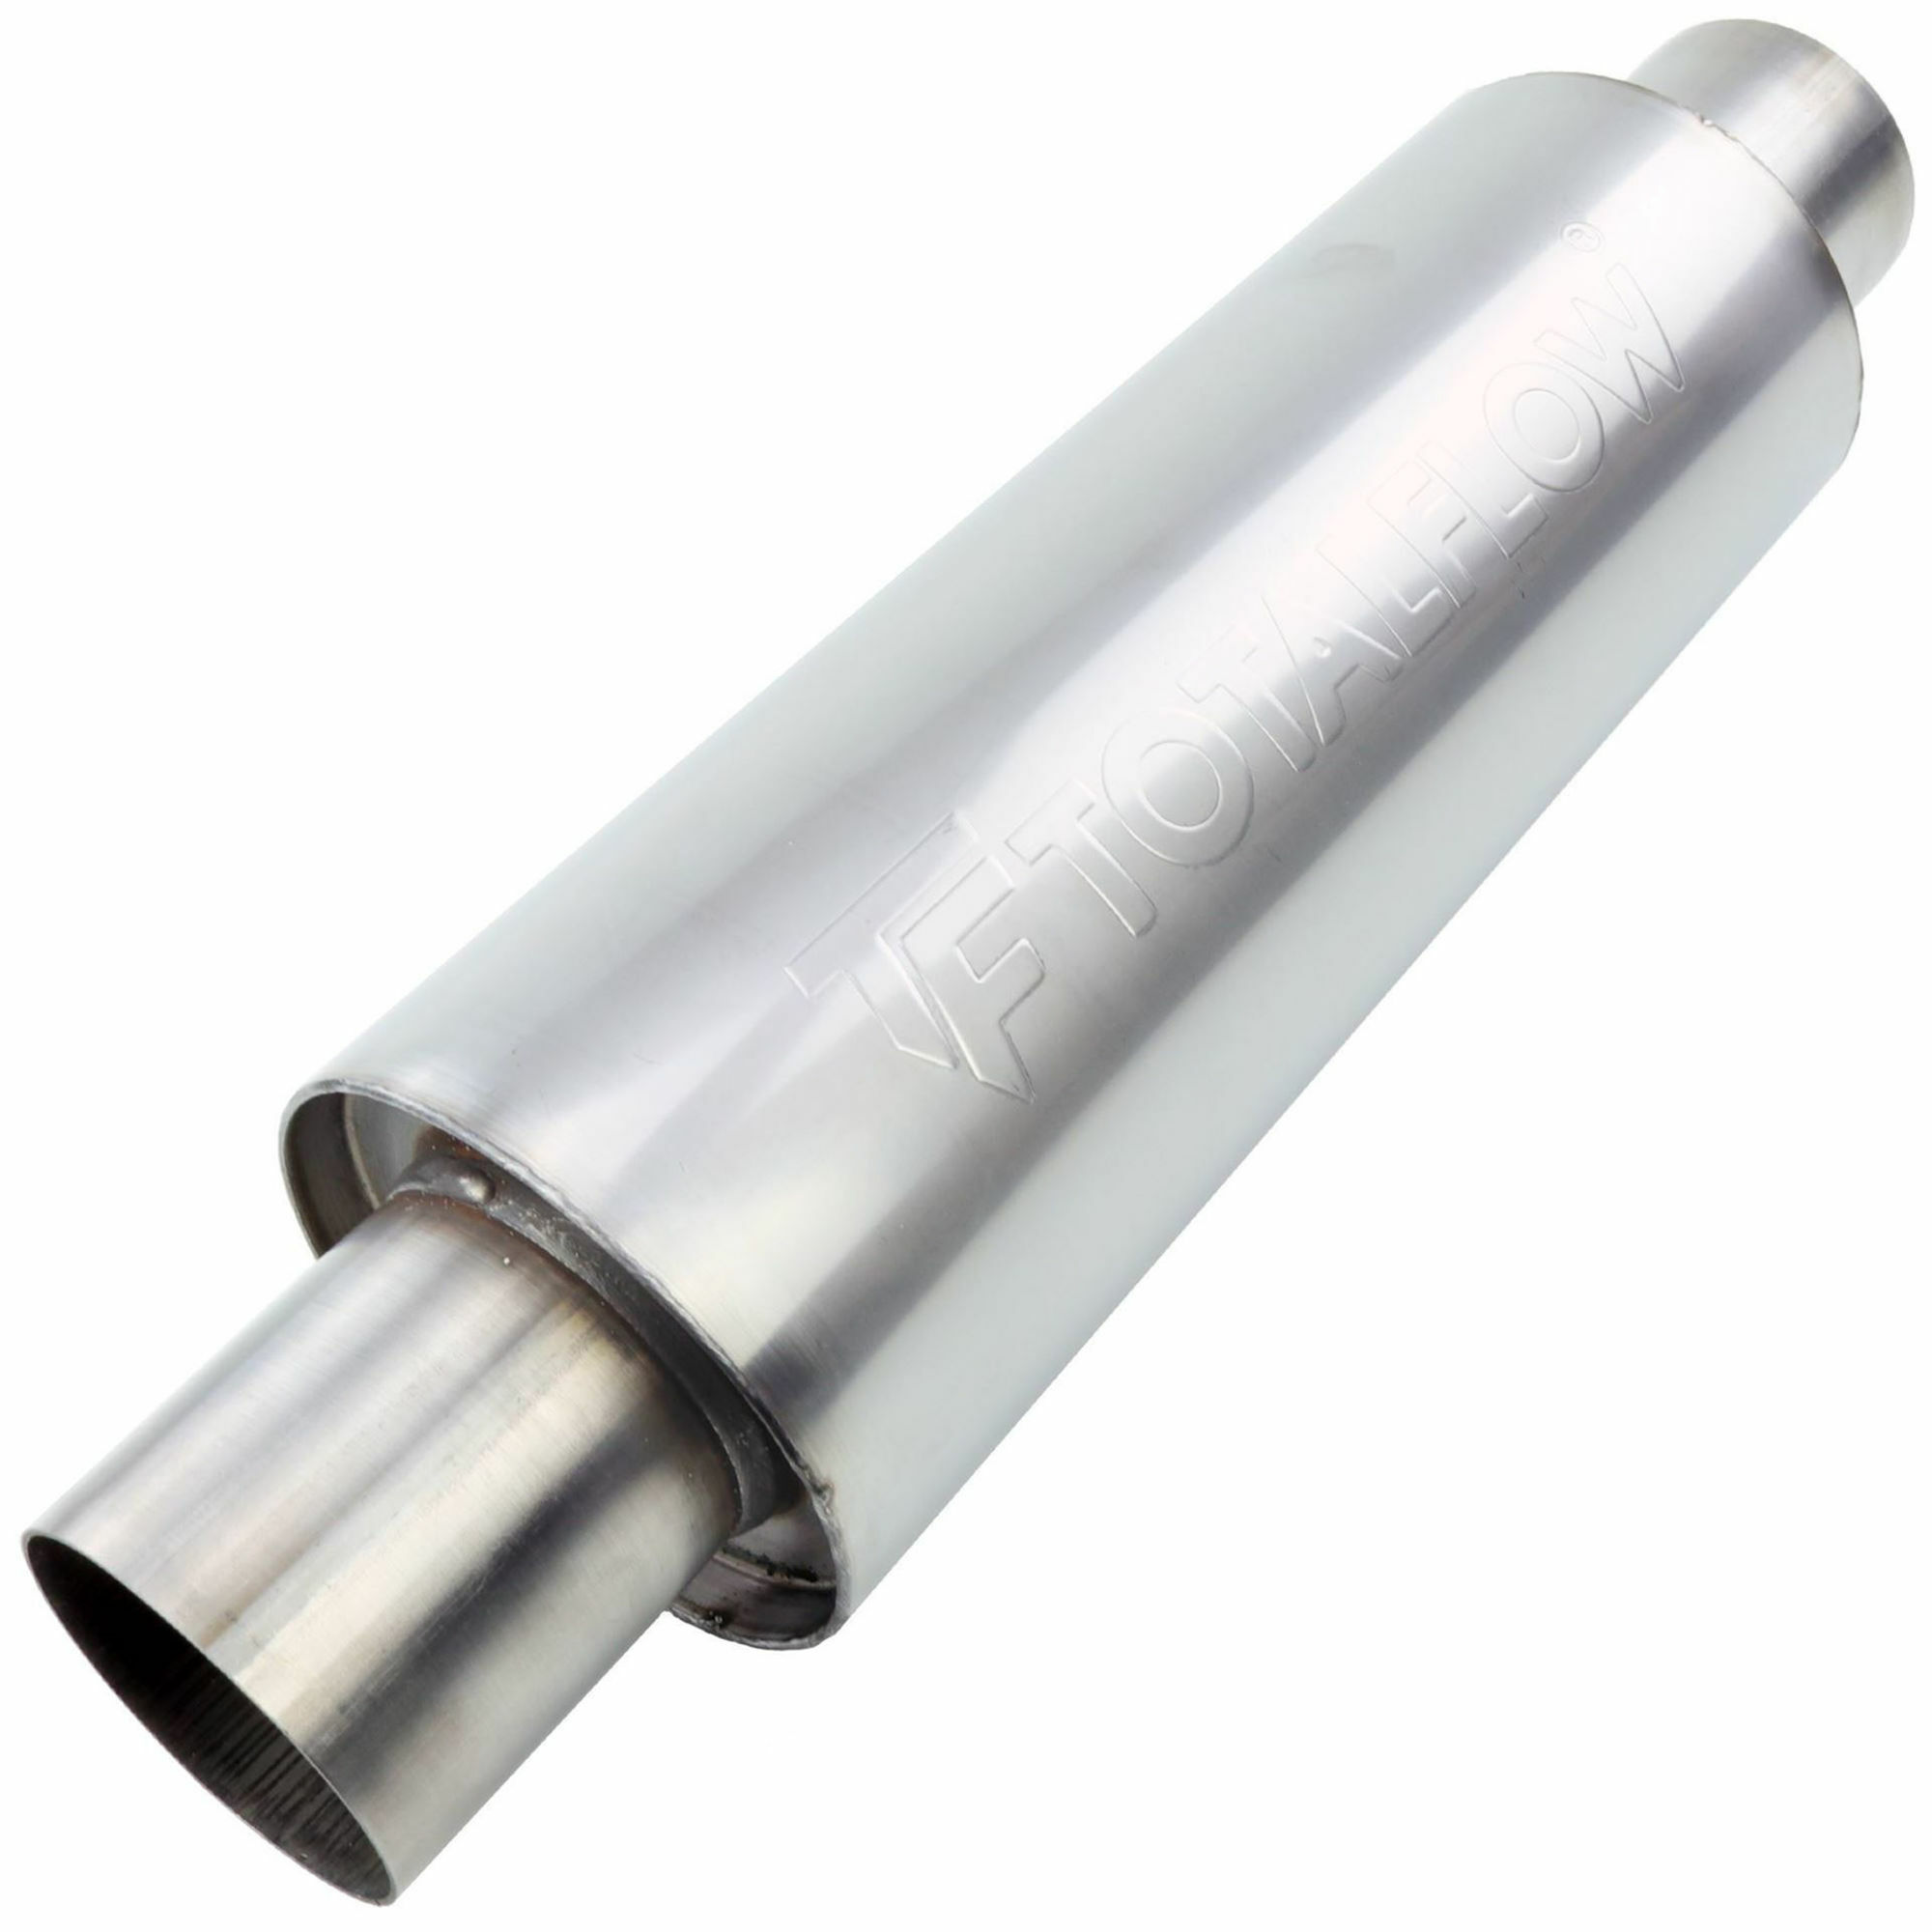 Picture of TOTALFLOW 22414 Straight Through Universal Exhaust Muffler - 2 Inch ID